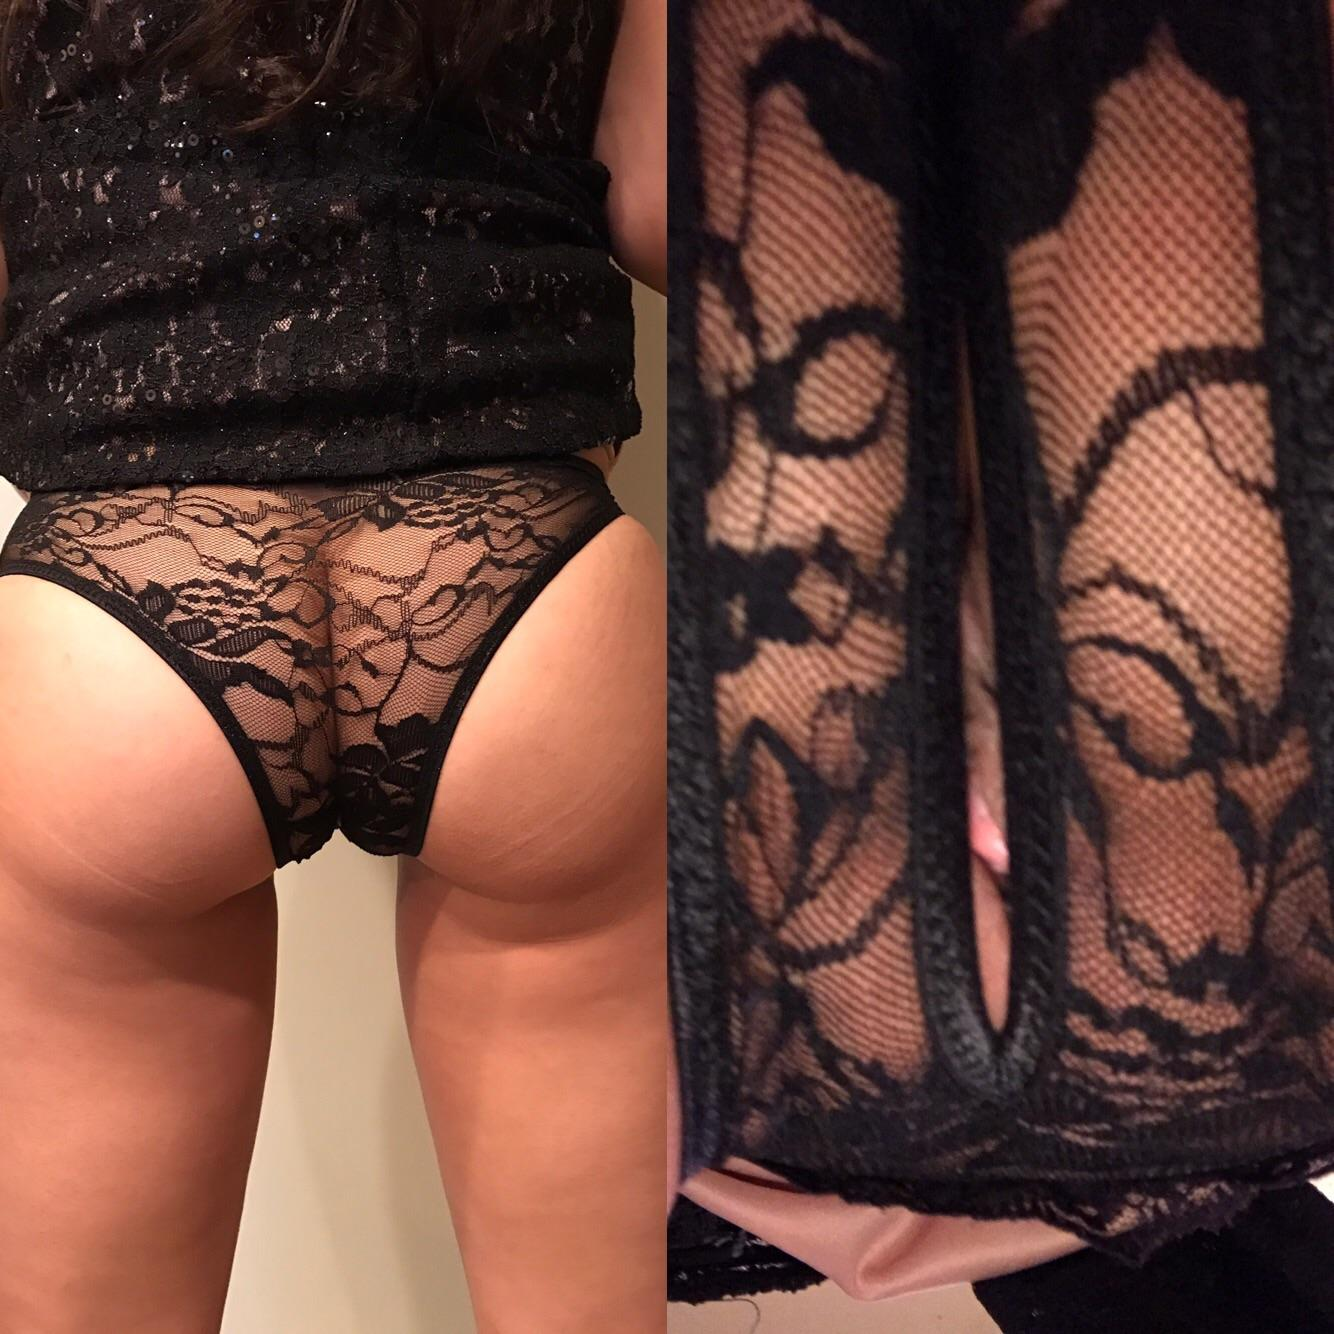 Wearing panties wife crotchless